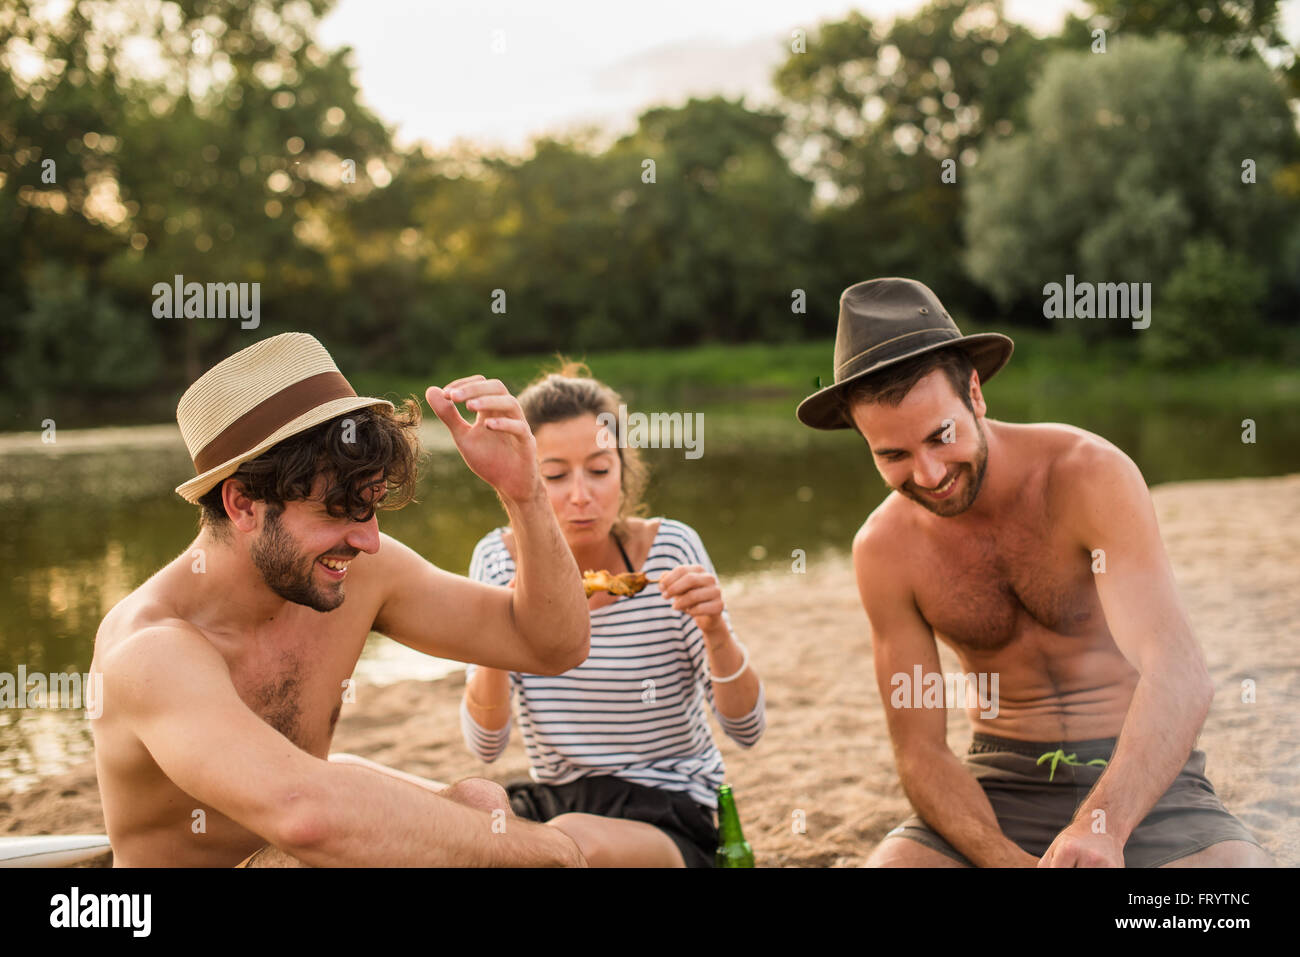 Evening at the beach. The barbecue is done, everybody is sitting in the sand, smiling and eating his chicken kebabs. - Stock Image